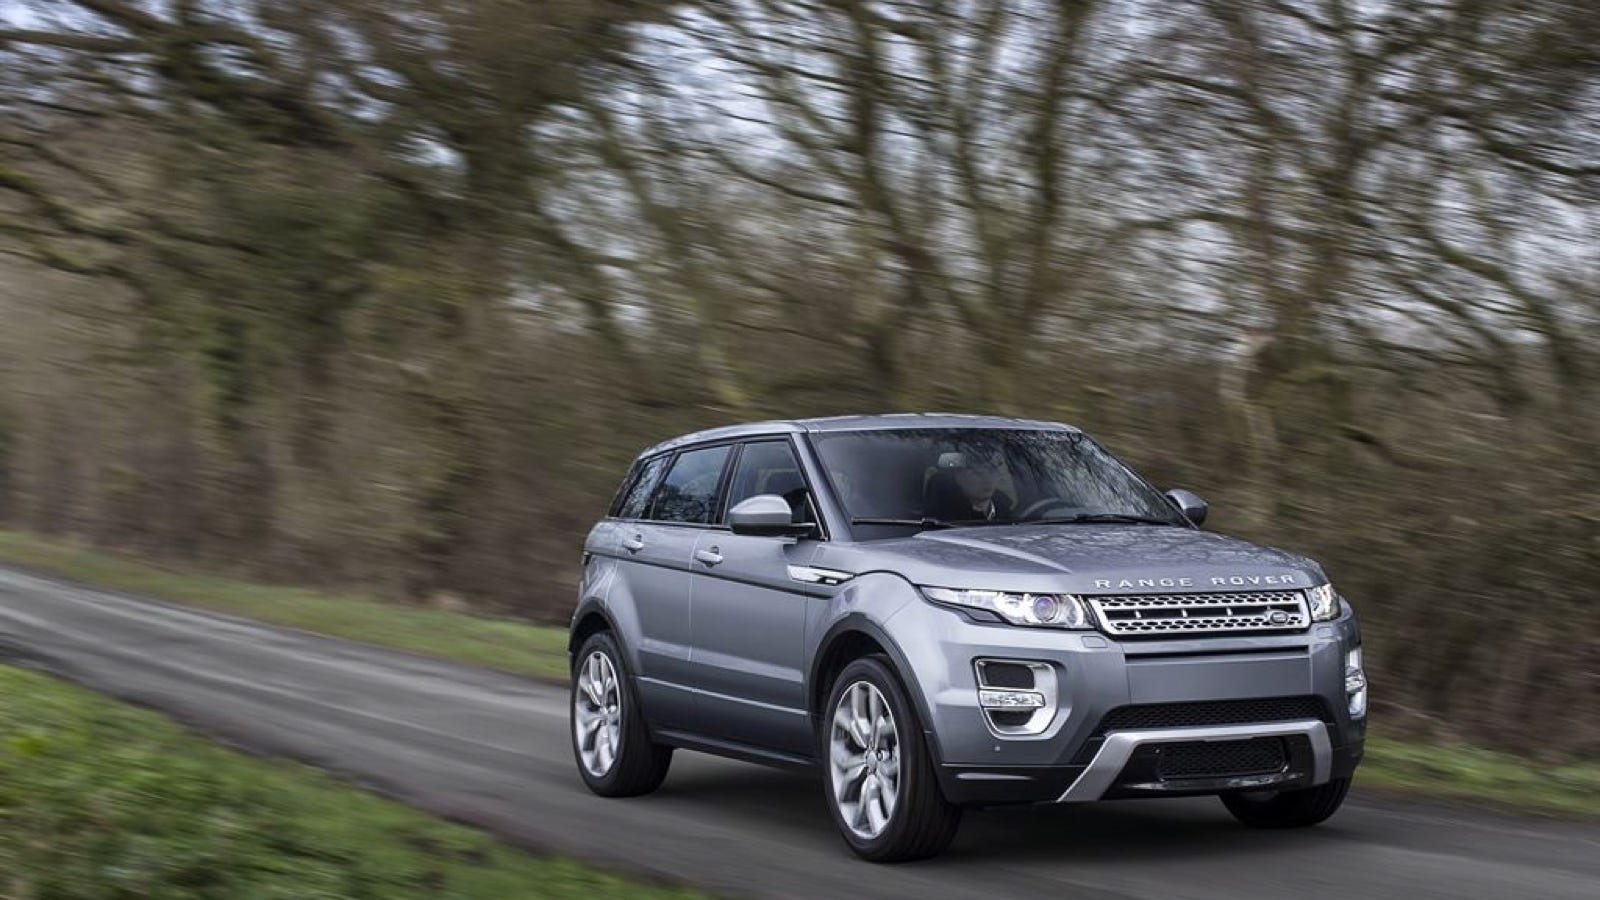 range rover evoque jalopnik 39 s buyer 39 s guide. Black Bedroom Furniture Sets. Home Design Ideas